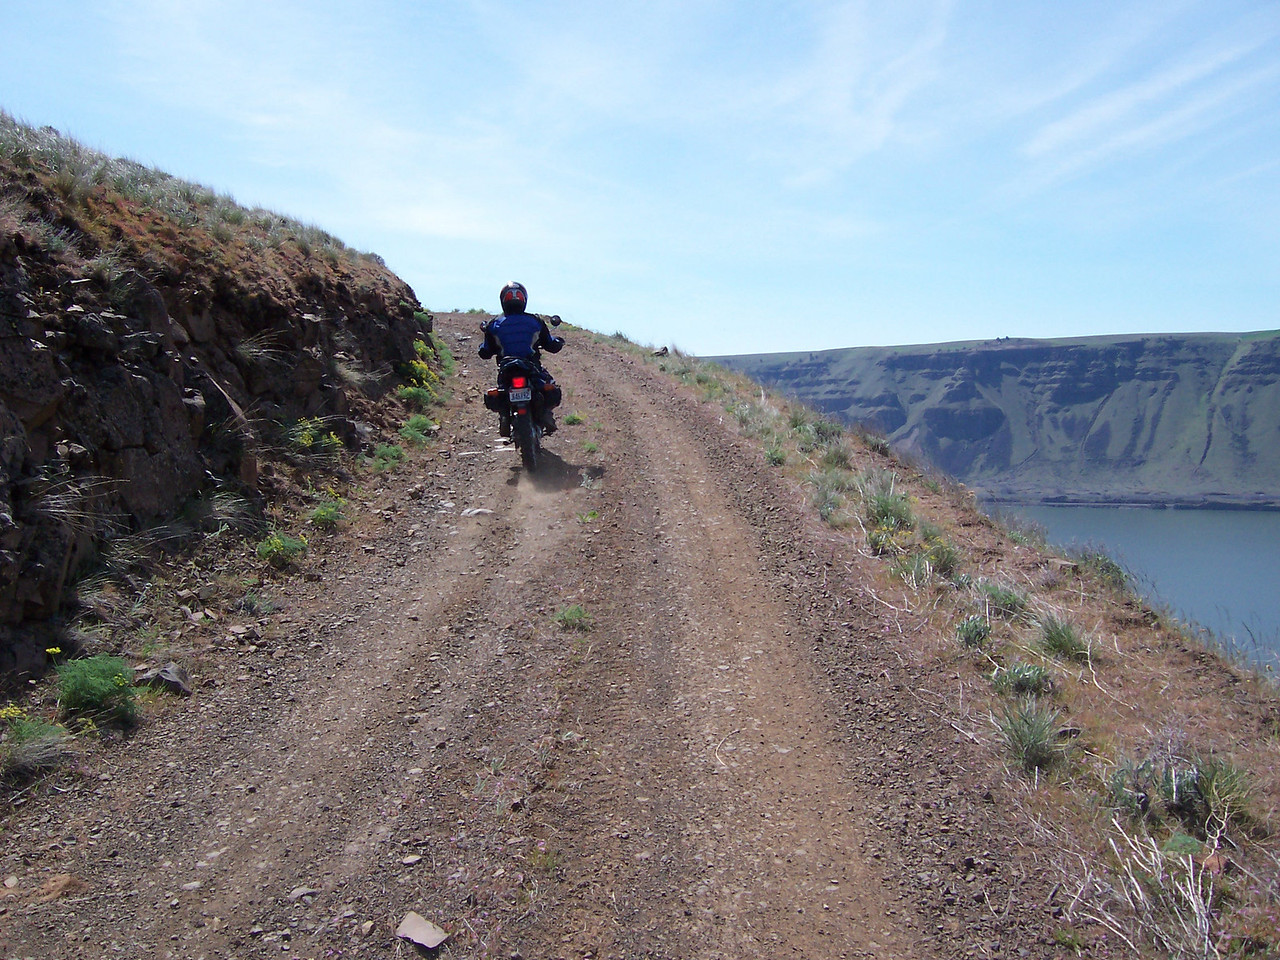 Climbing up out of the Columbia Gorge on the Chamberlain-Goodnoe Rd